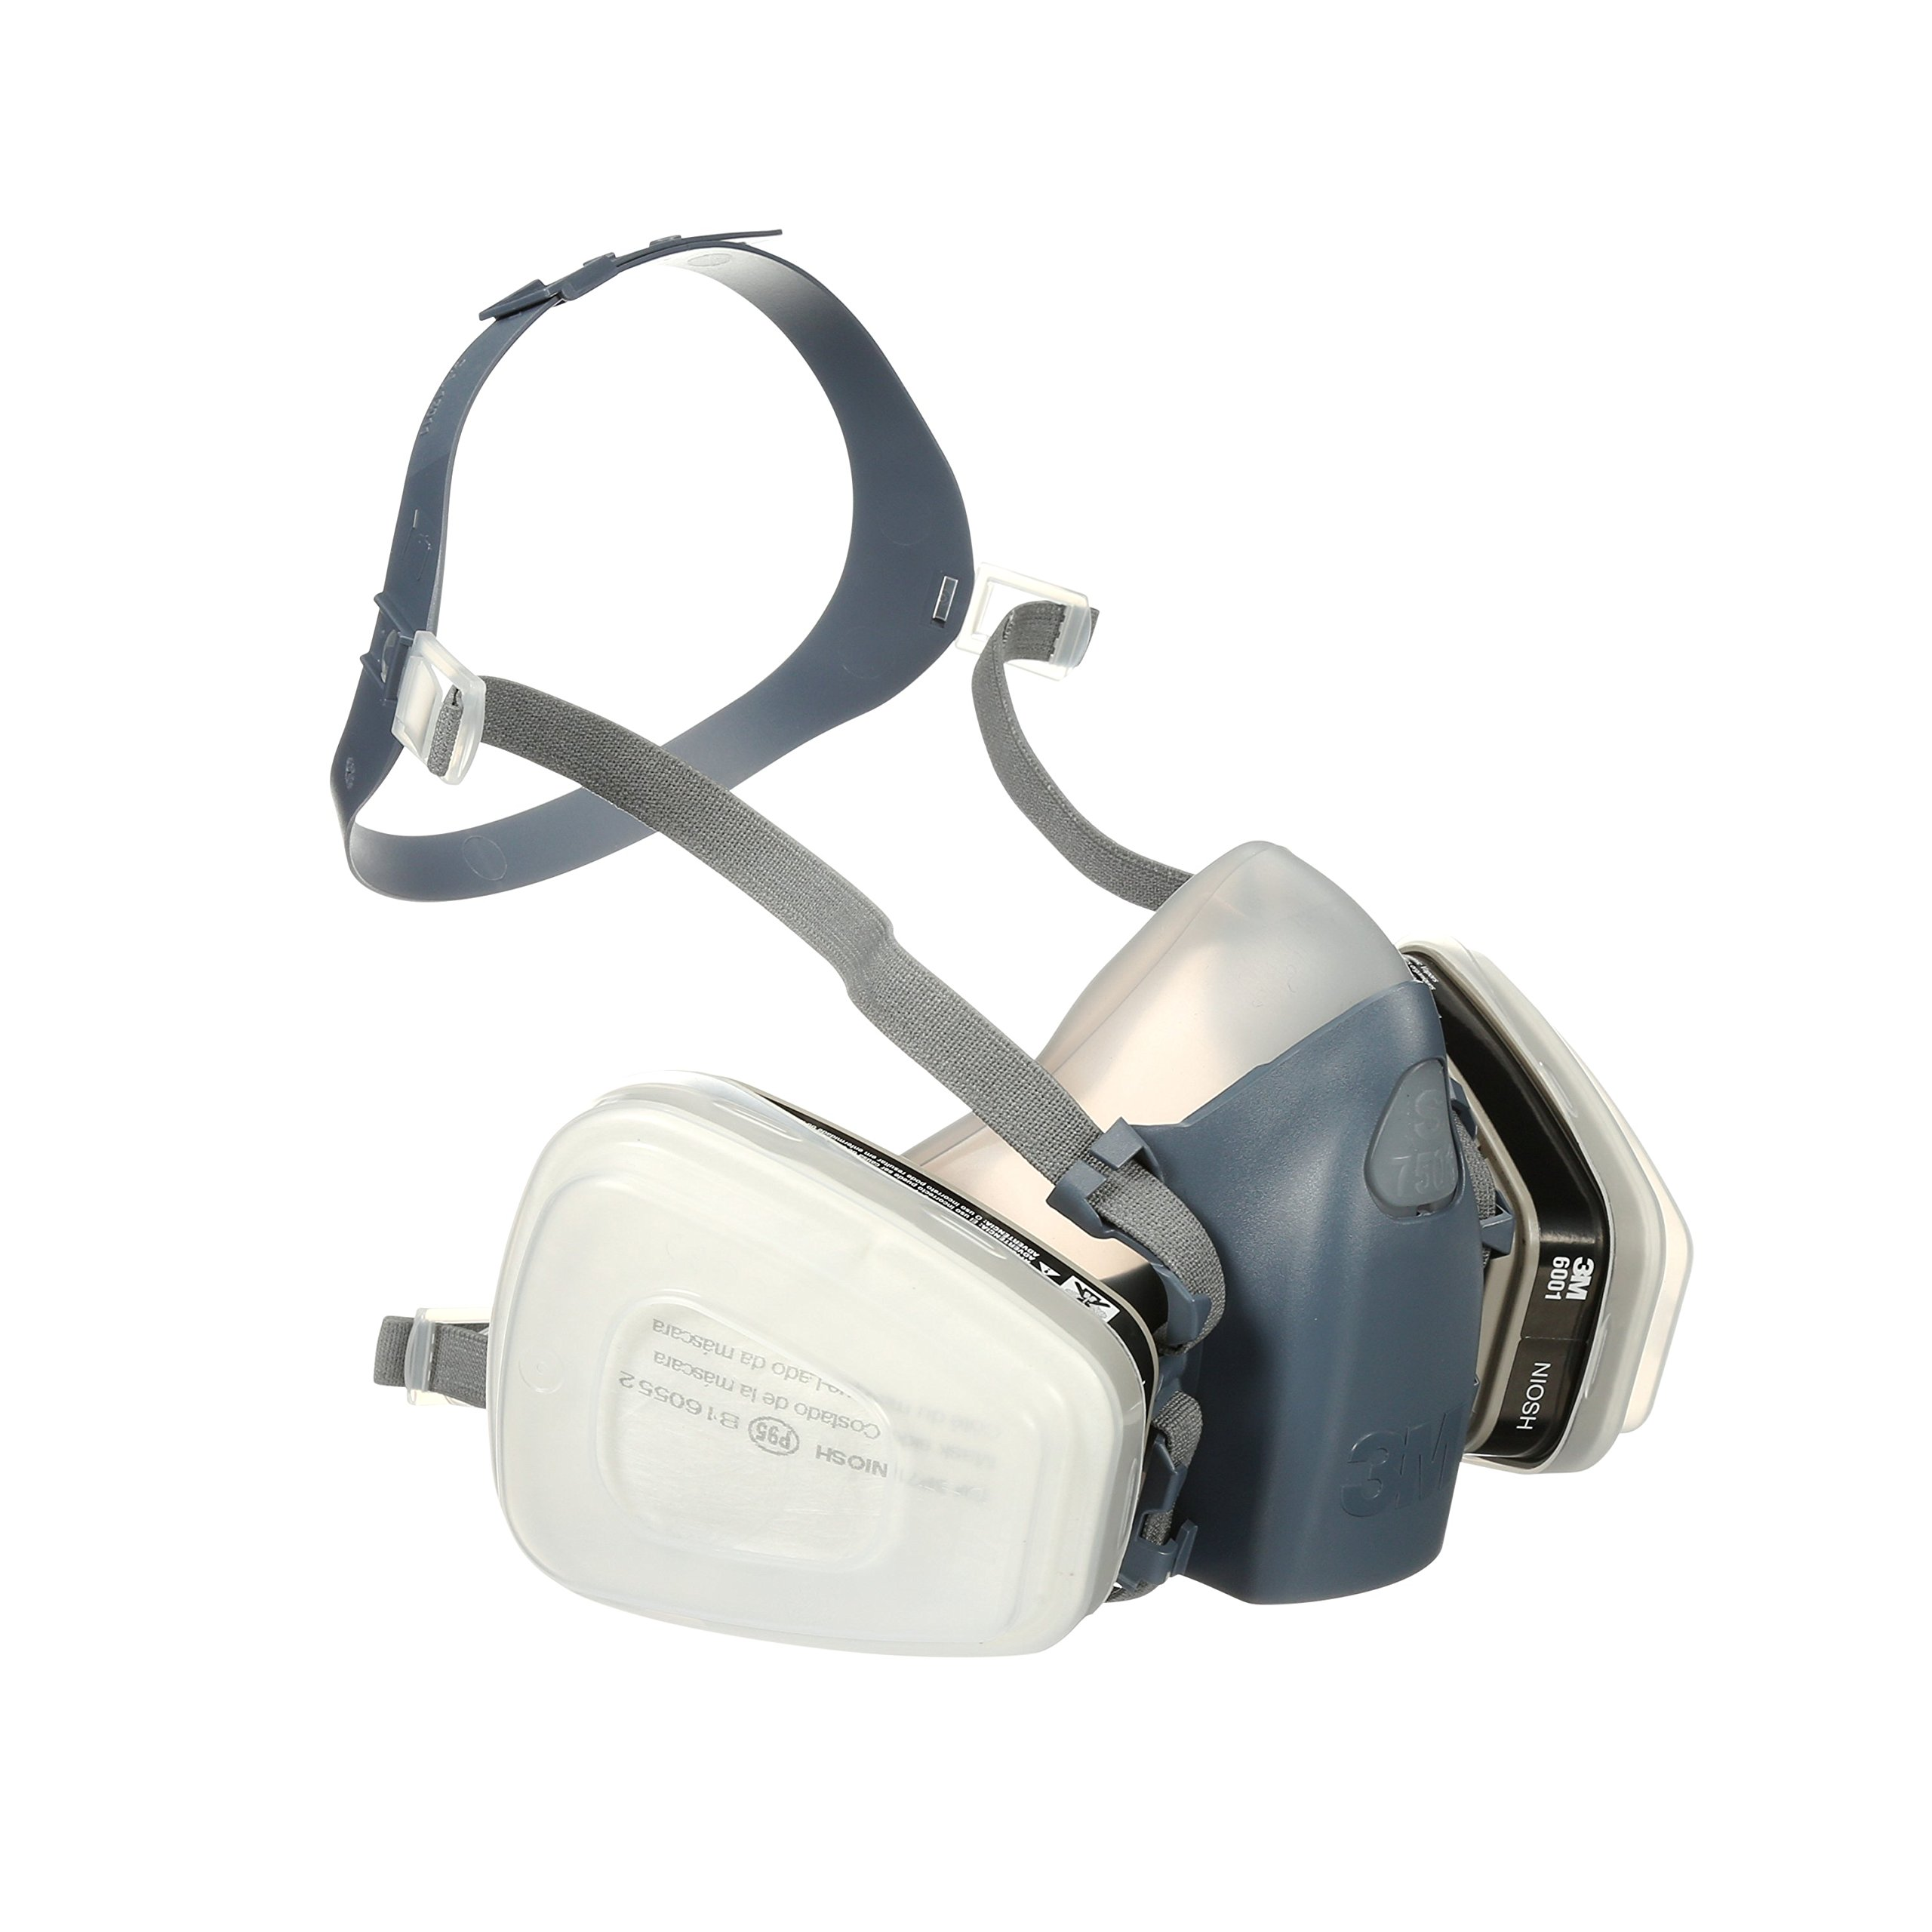 3M 7511PA1-A-PS Professional HalfMask Organic Vapor, N95 Respirator Assembly, Small by 3M Safety (Image #5)